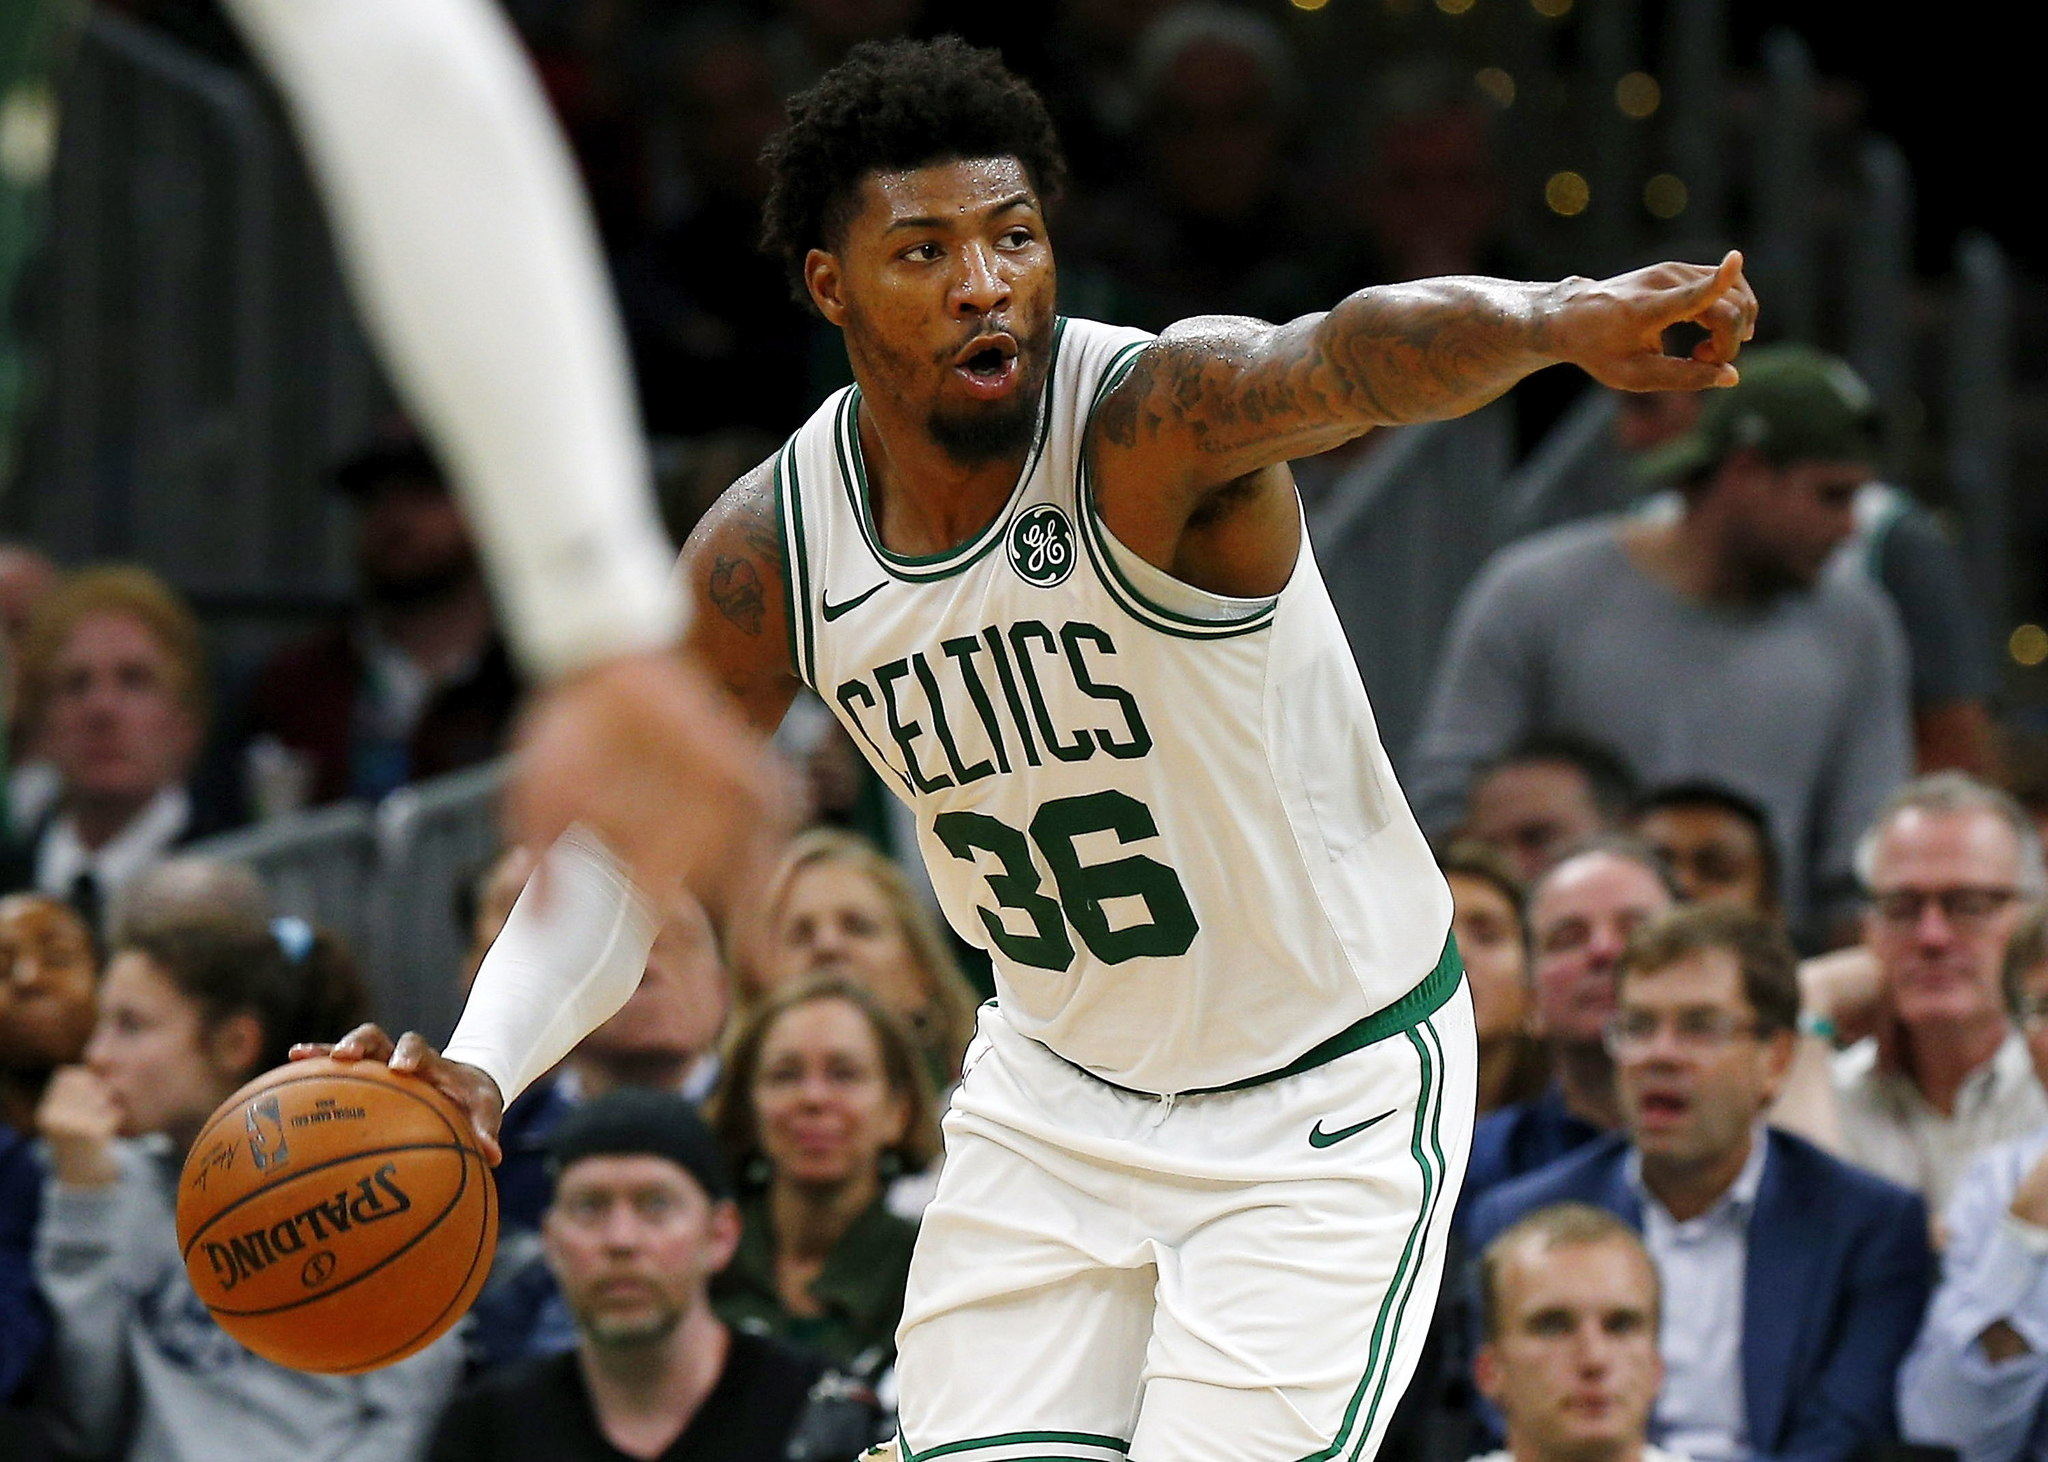 Boston (United States), 31/10/2019.- (FILE) - Boston Celtics guard Marcus Smart gestures during the second quarter against the Milwaukee Bucks at the TD Garden in Boston, Massachusetts, USA, 30 October 2019 (Reissued 19 March 2020). Boston Celtics guard Marcus Smart has announced that he tested positive for the COVID-19 coronavirus. The lt;HIT gt;NBA lt;/HIT gt; season was suspended on 11 March due to the coronavirus pandemic. (Baloncesto, Estados Unidos) EFE/EPA/CJ GUNTHER SHUTTERSTOCK OUT *** Local Caption *** 55590371